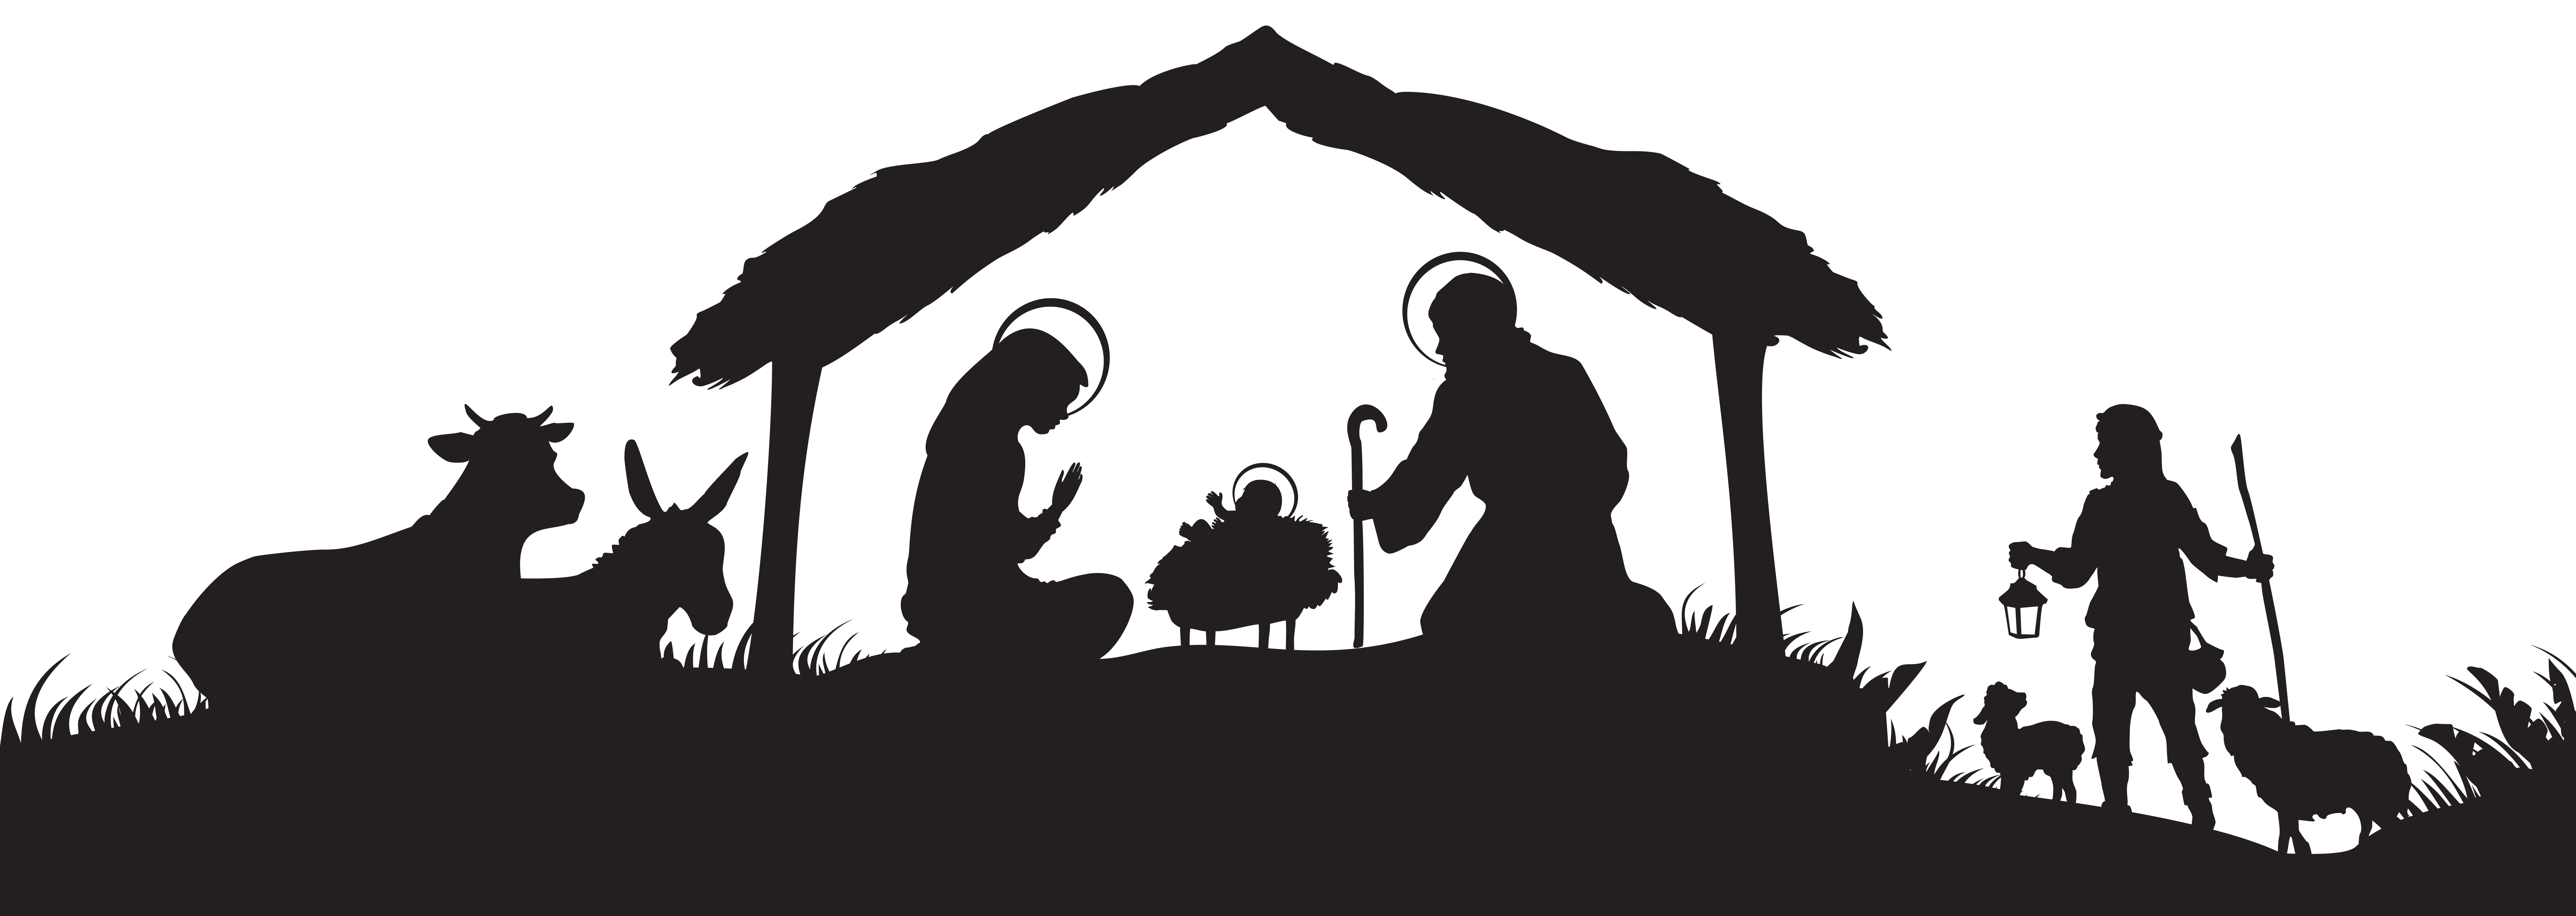 png freeuse library Christmas scene silhouette png. Nativity clipart season.